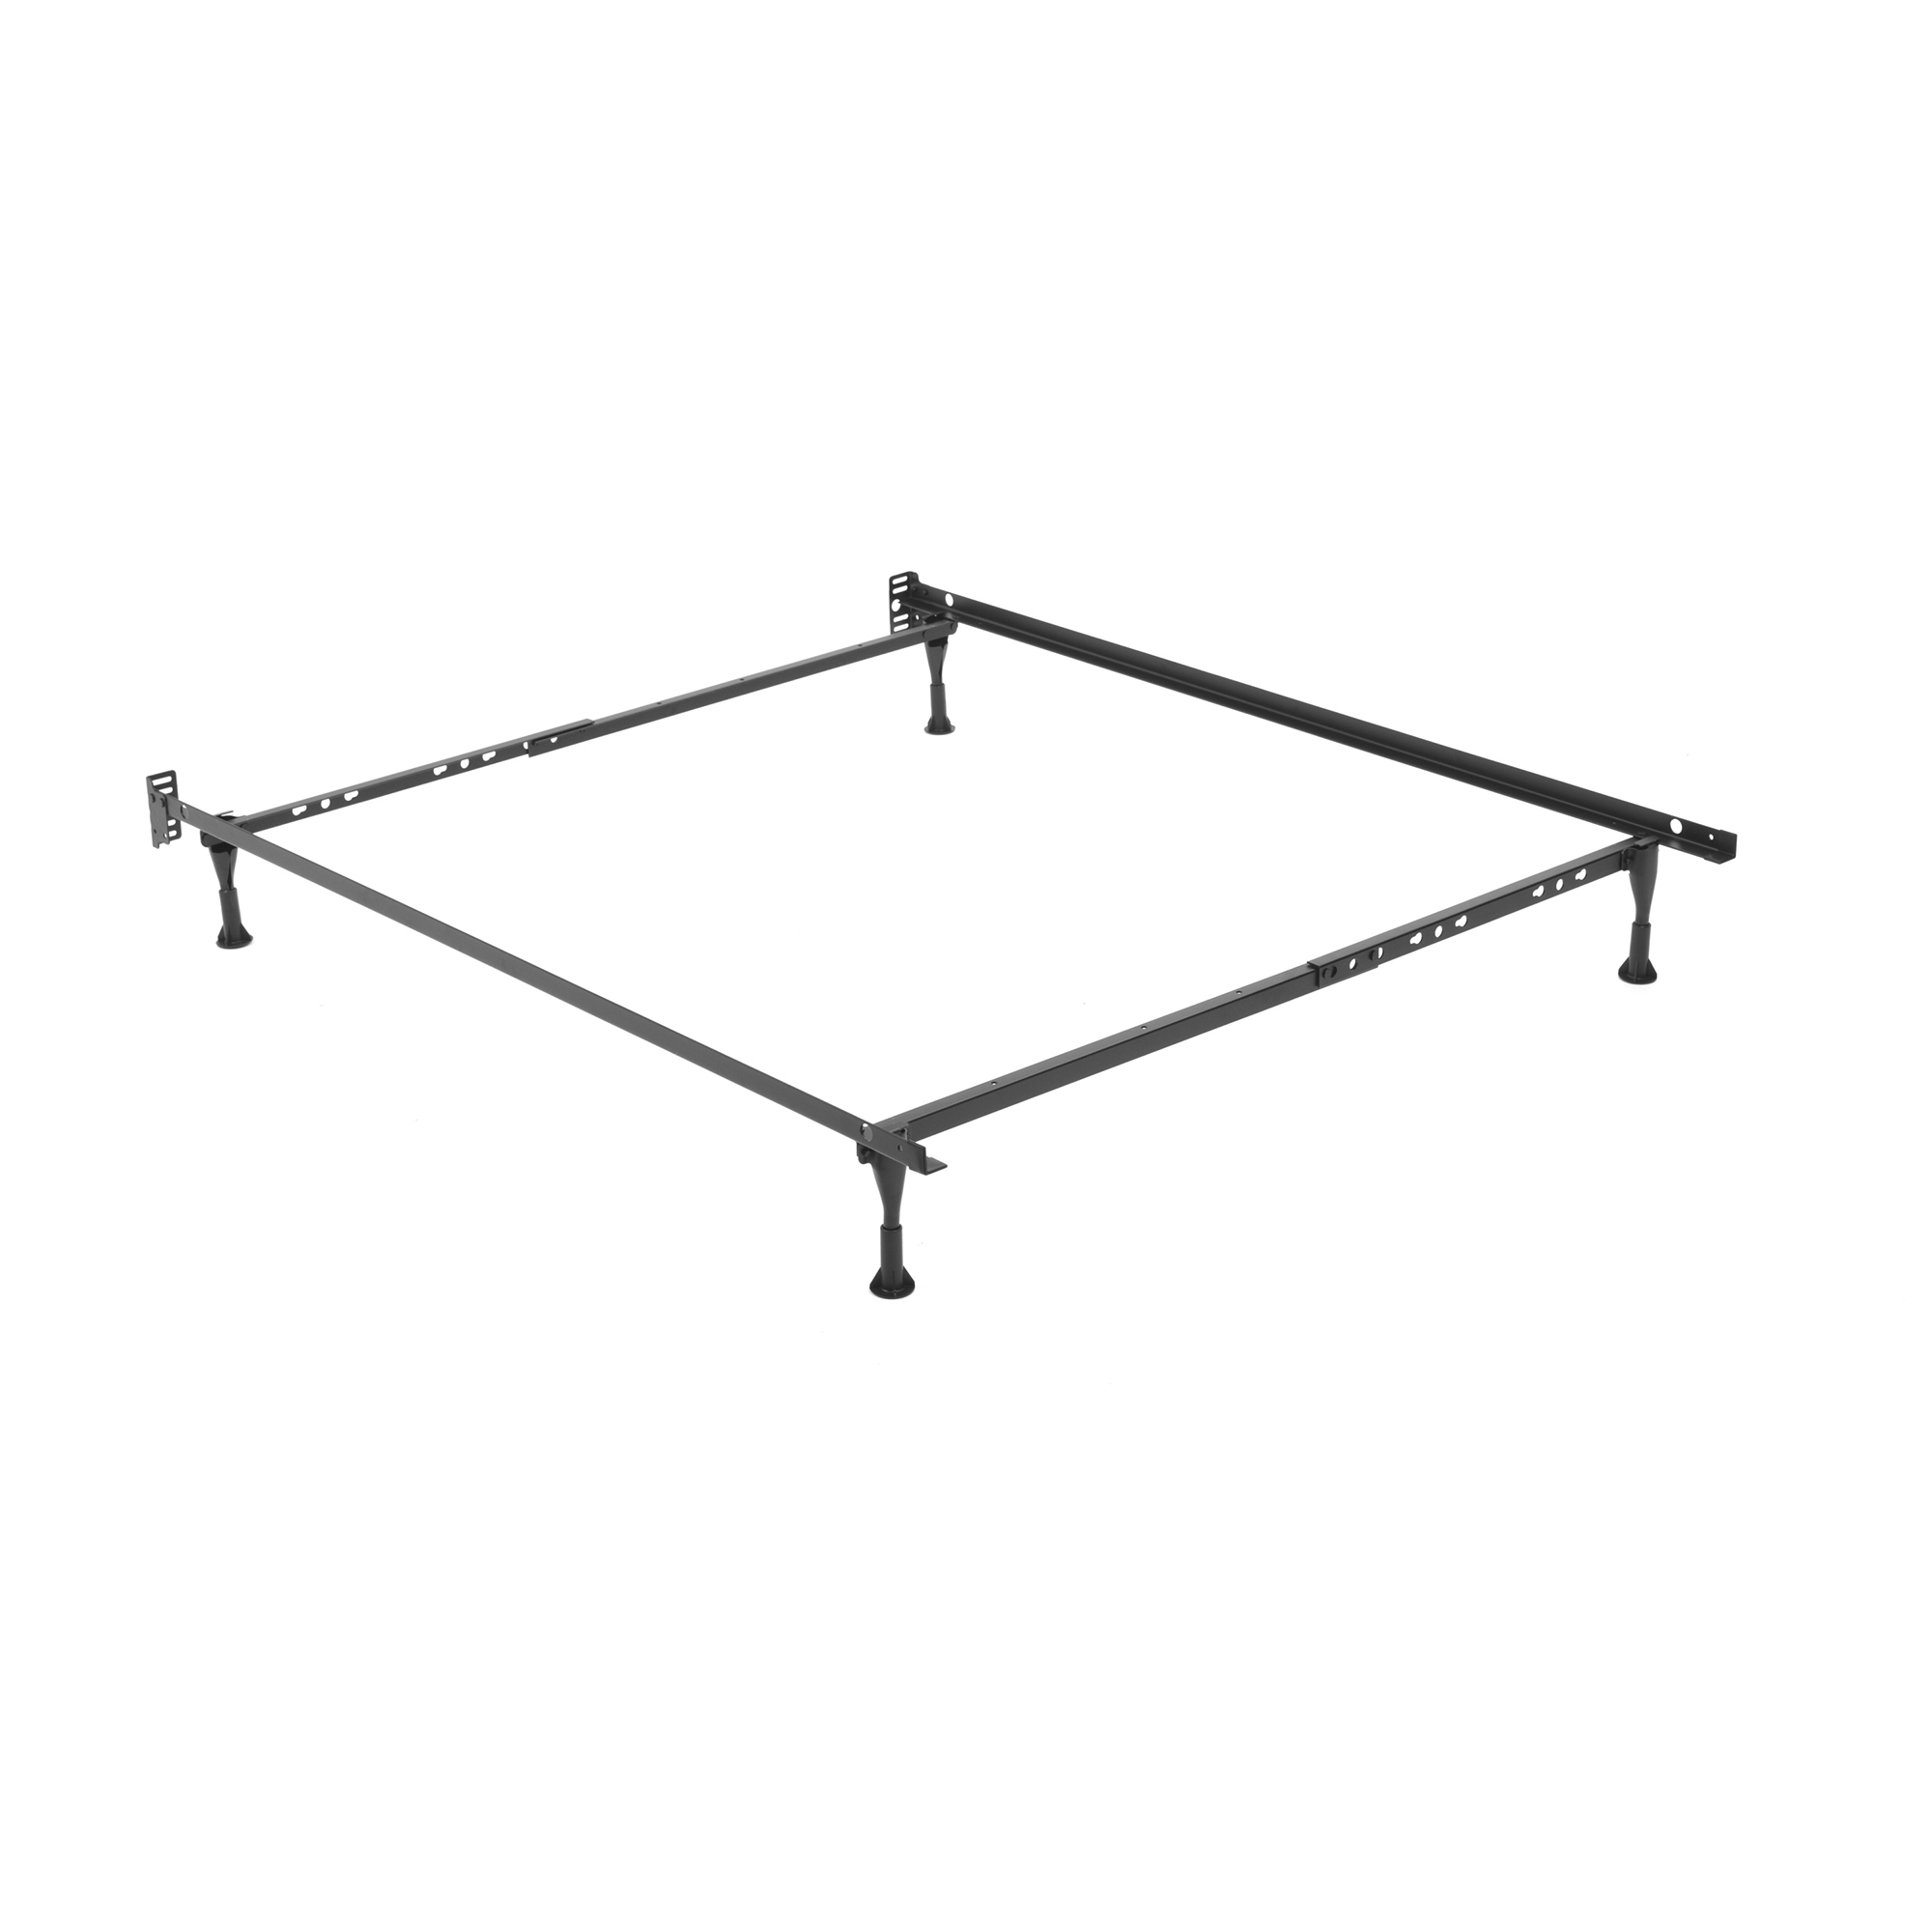 423261Fashion Bed Group Sentry 79G Adjustable Bed Frame with ...